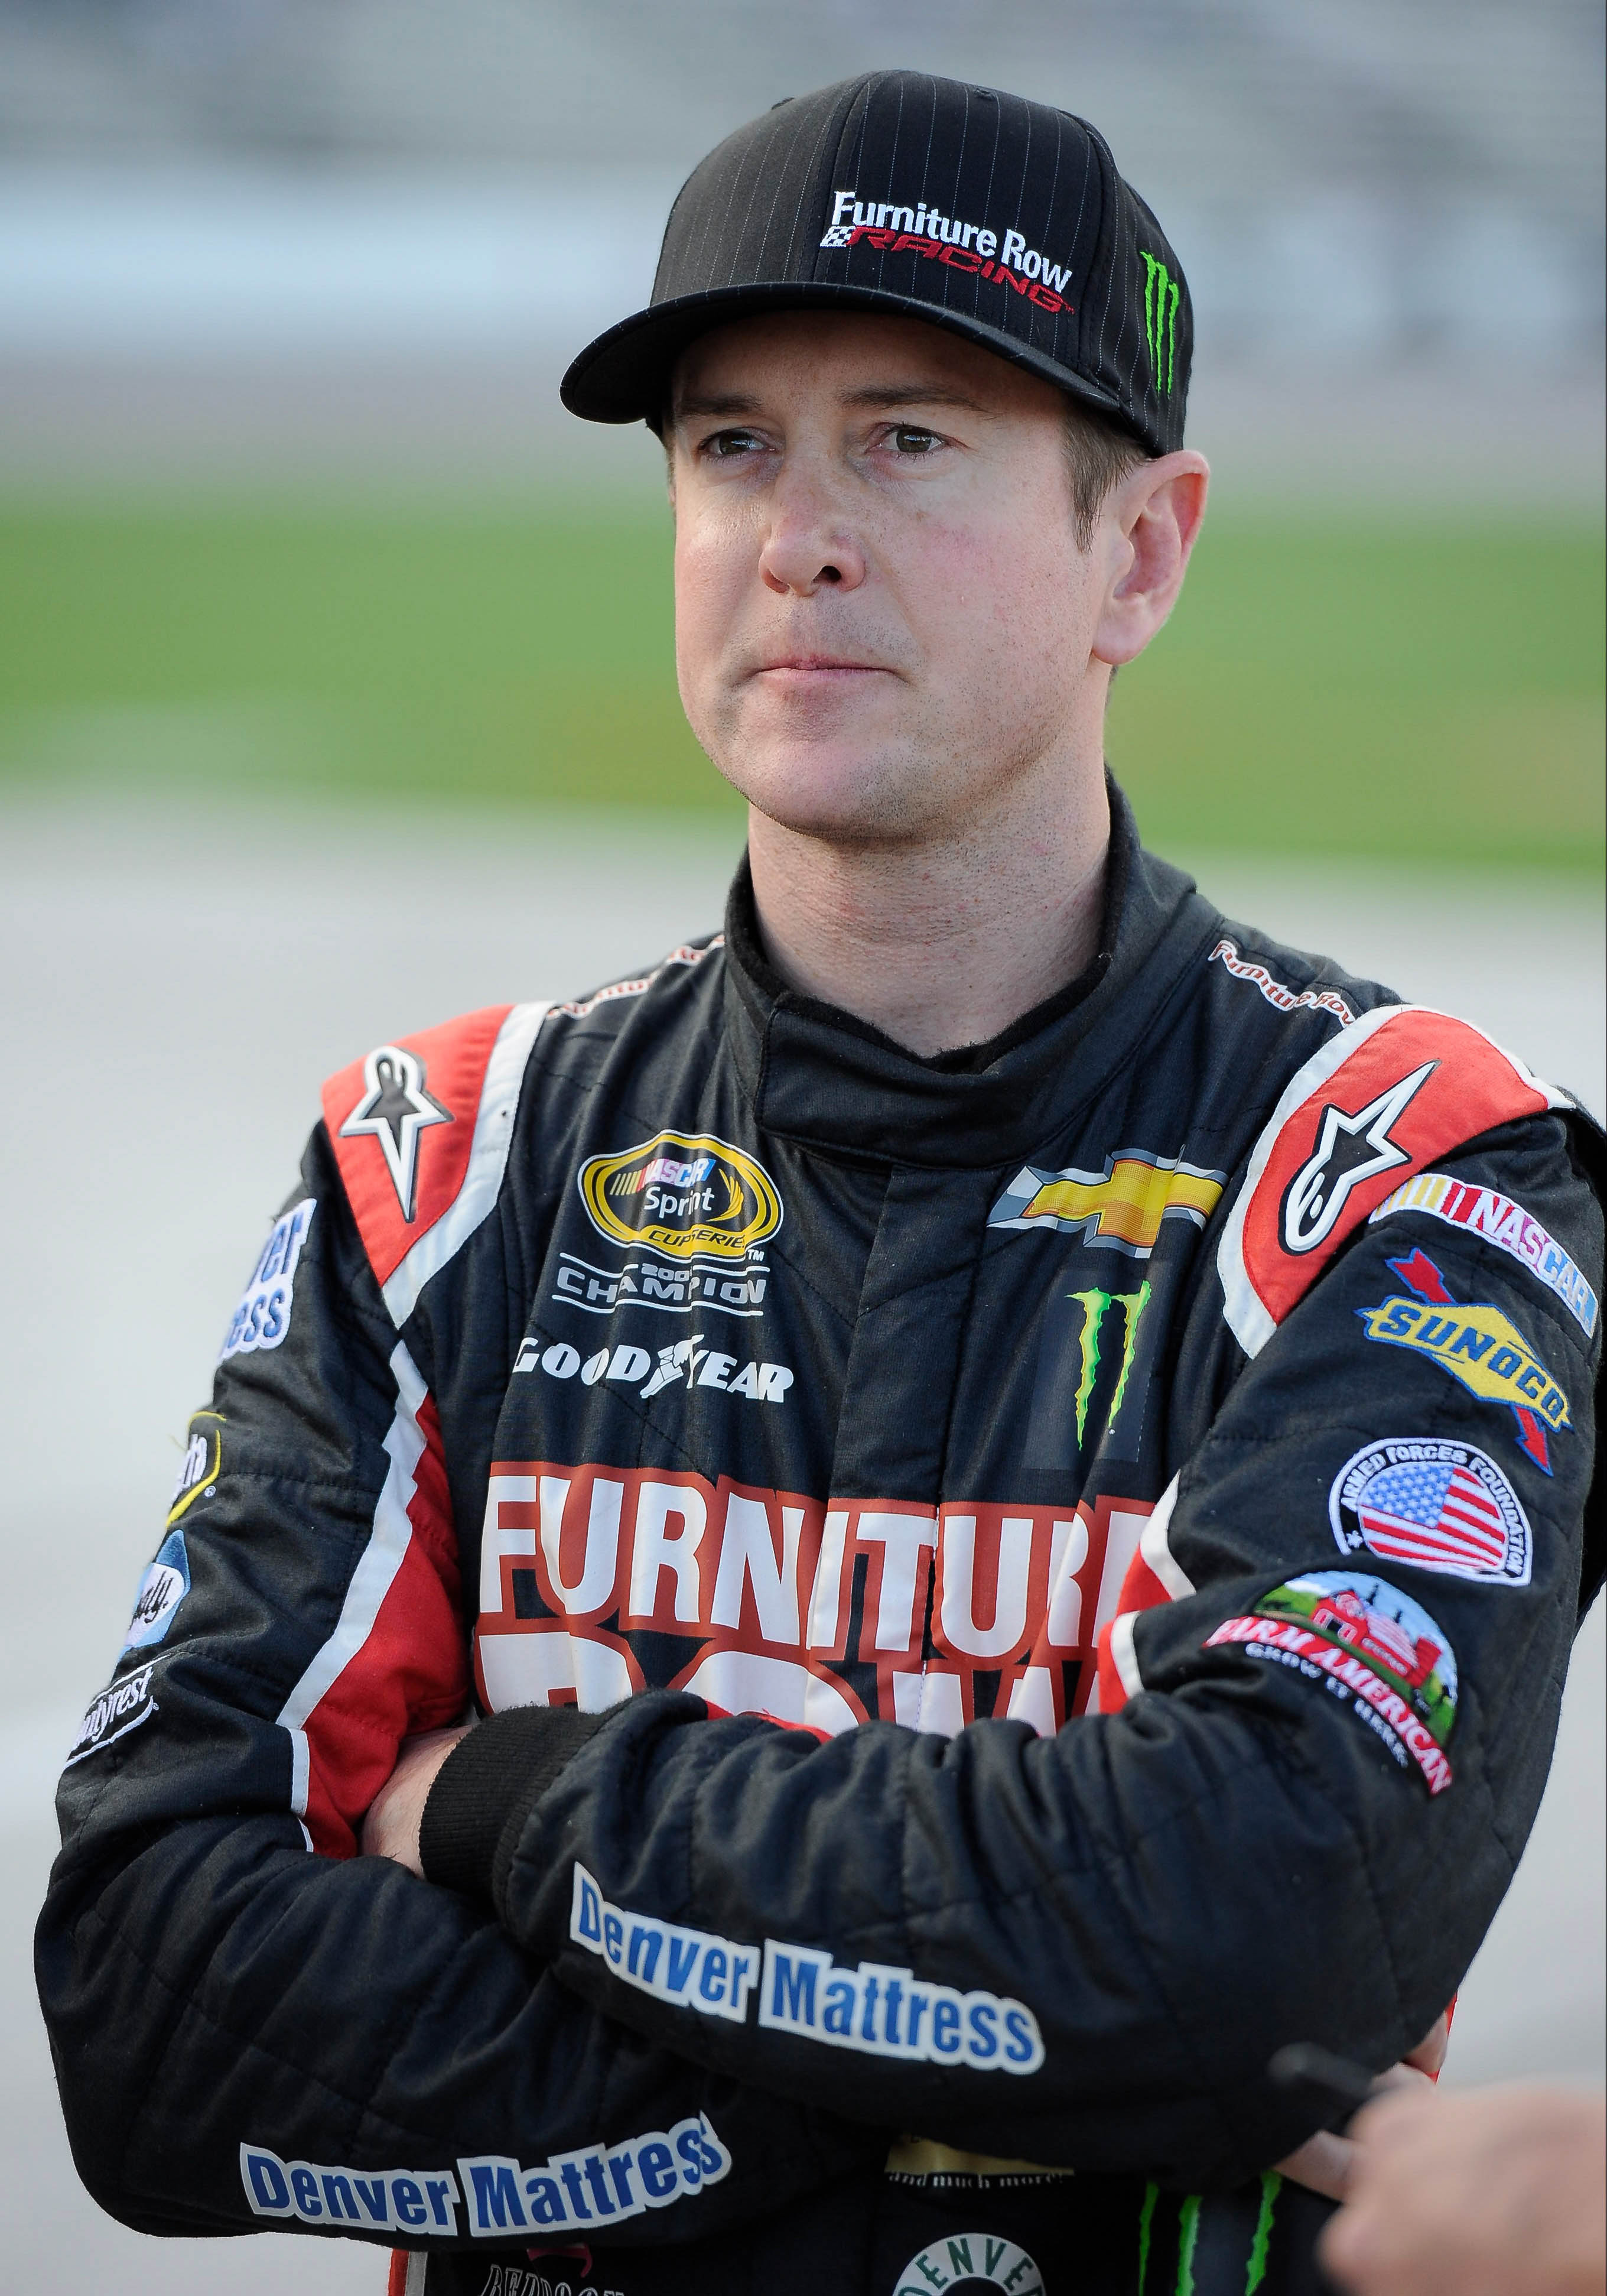 Kurt Busch (USA TODAY Sports)